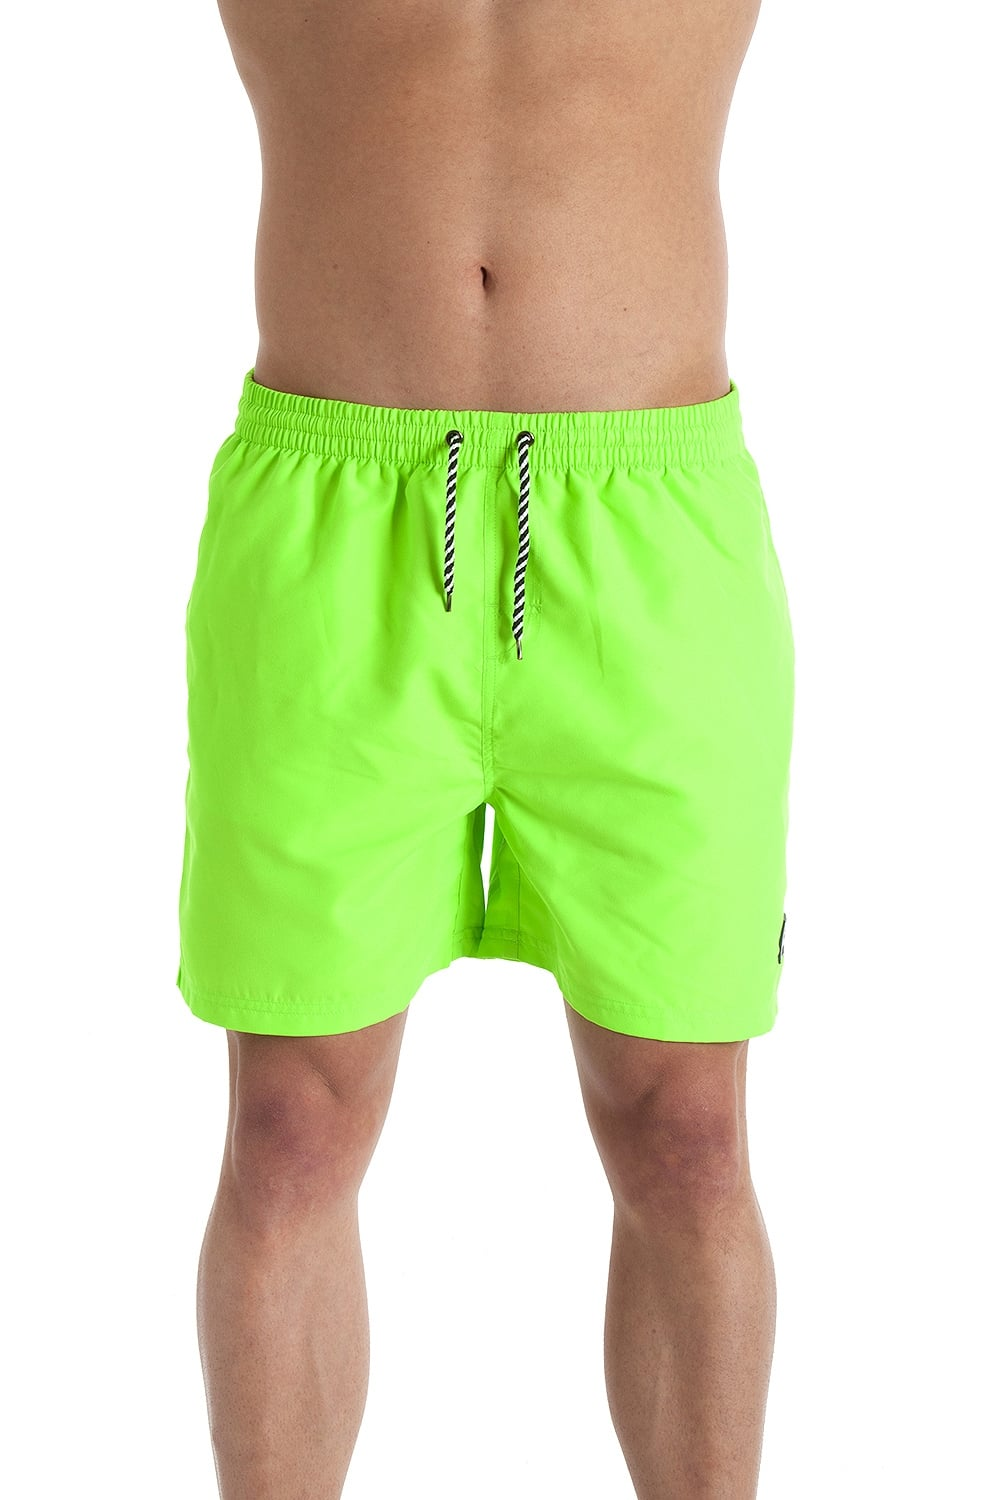 Mens Neon Green Swimming Shorts